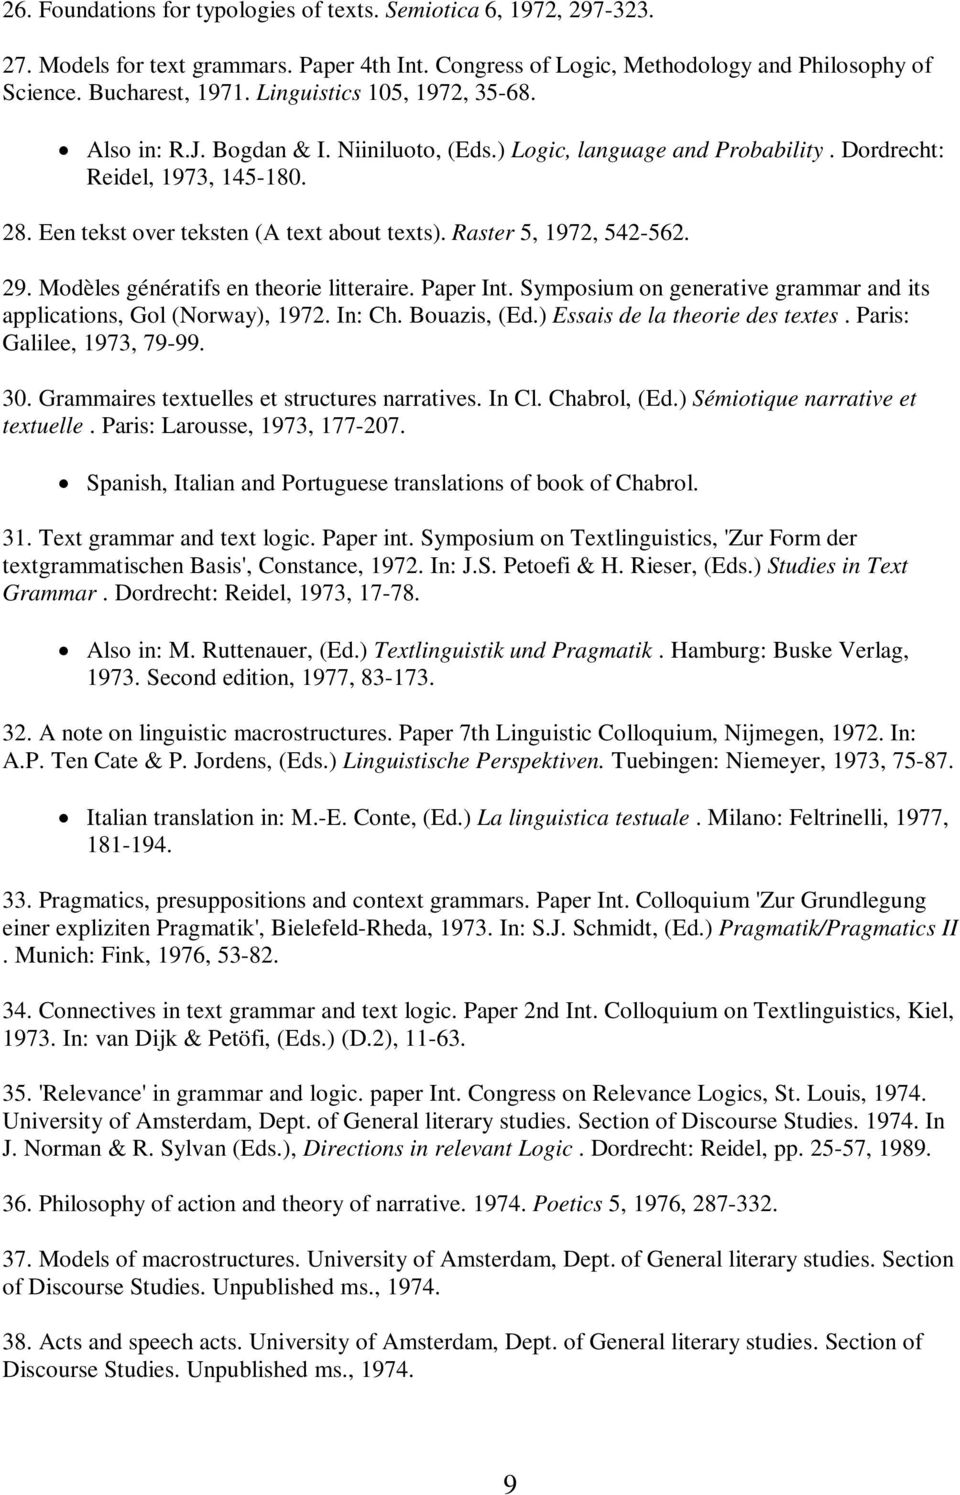 Raster 5, 1972, 542-562. 29. Modèles génératifs en theorie litteraire. Paper Int. Symposium on generative grammar and its applications, Gol (Norway), 1972. In: Ch. Bouazis, (Ed.